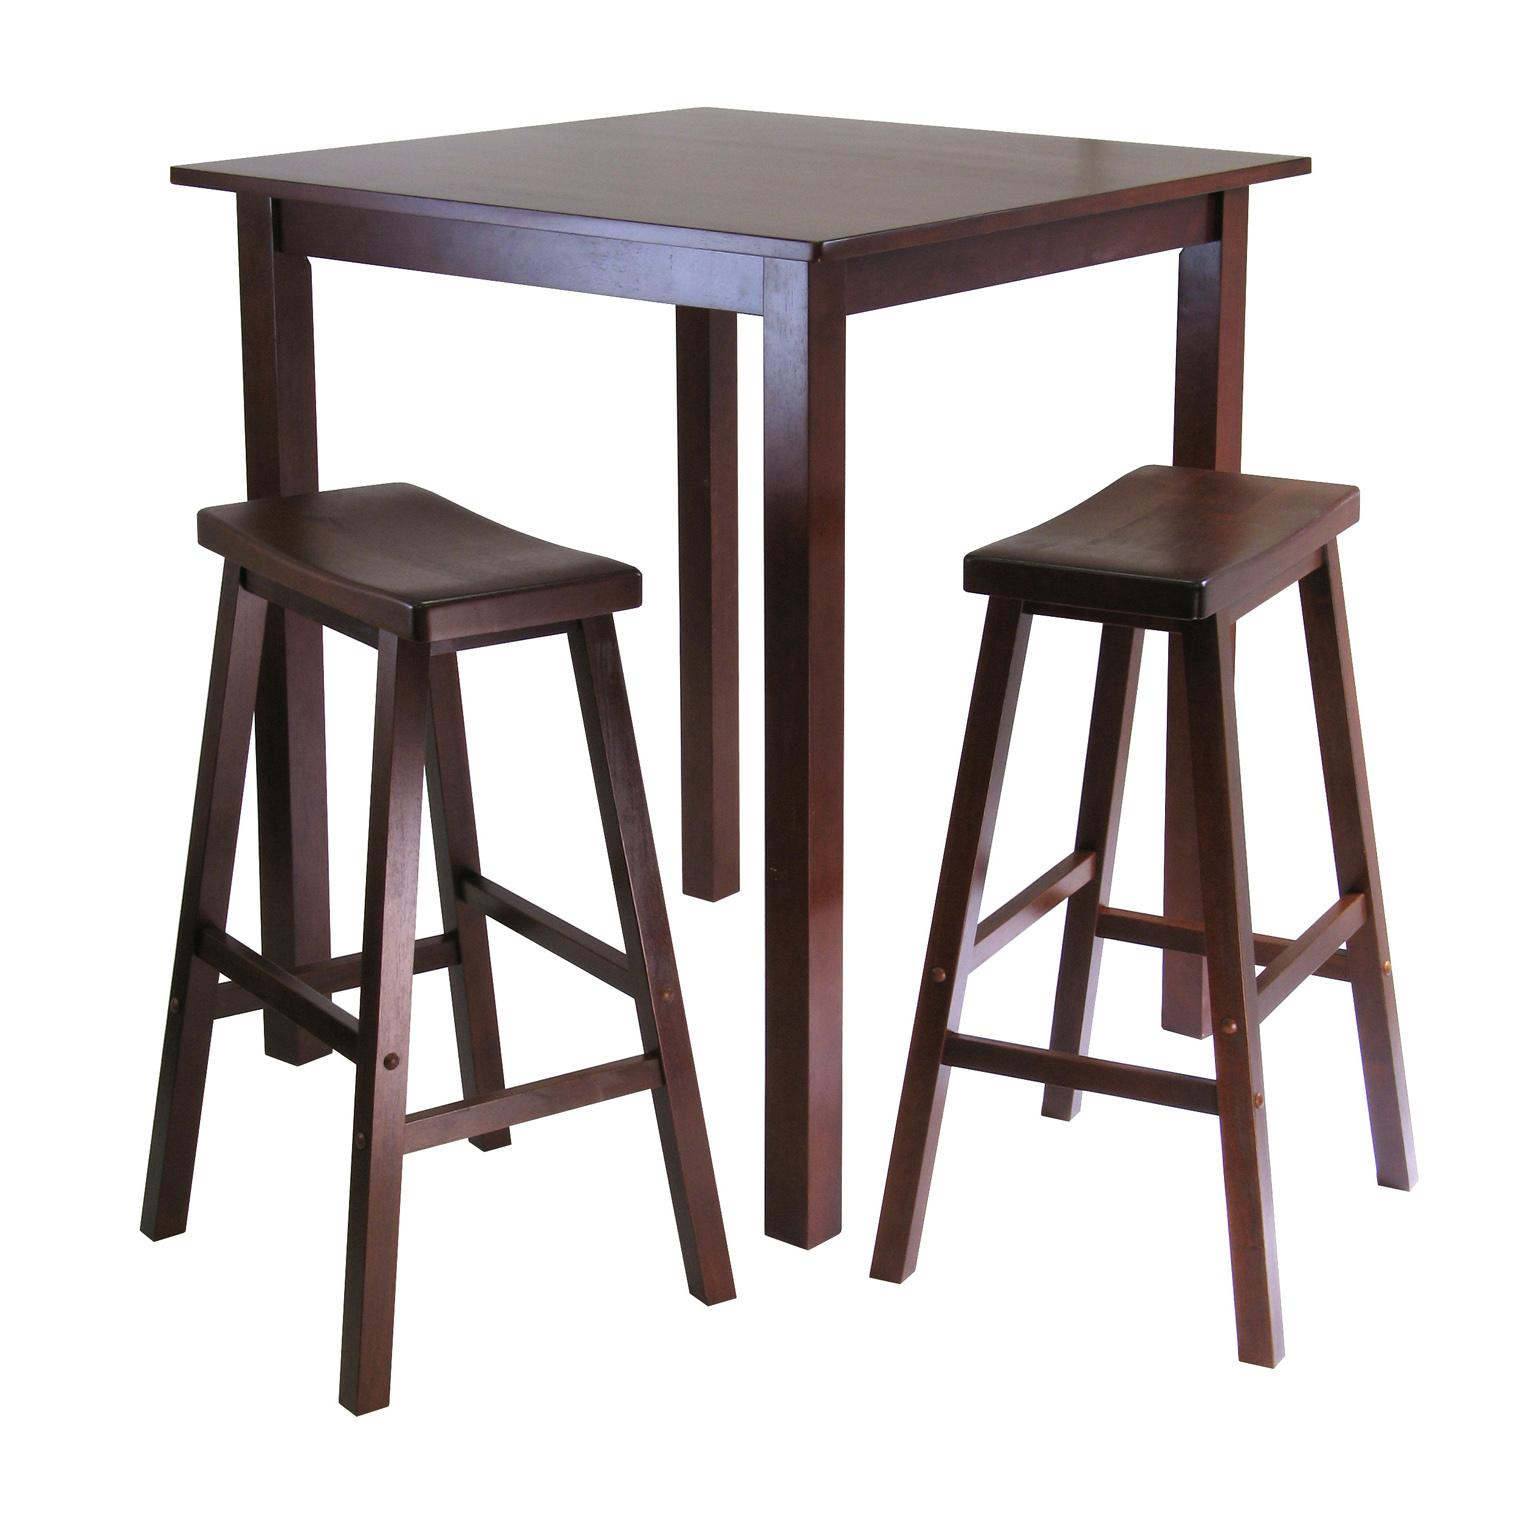 View larger  sc 1 st  Amazon.com & Amazon.com: Winsomeu0027s Parkland 3-Piece Square High/Pub Table Set ... islam-shia.org